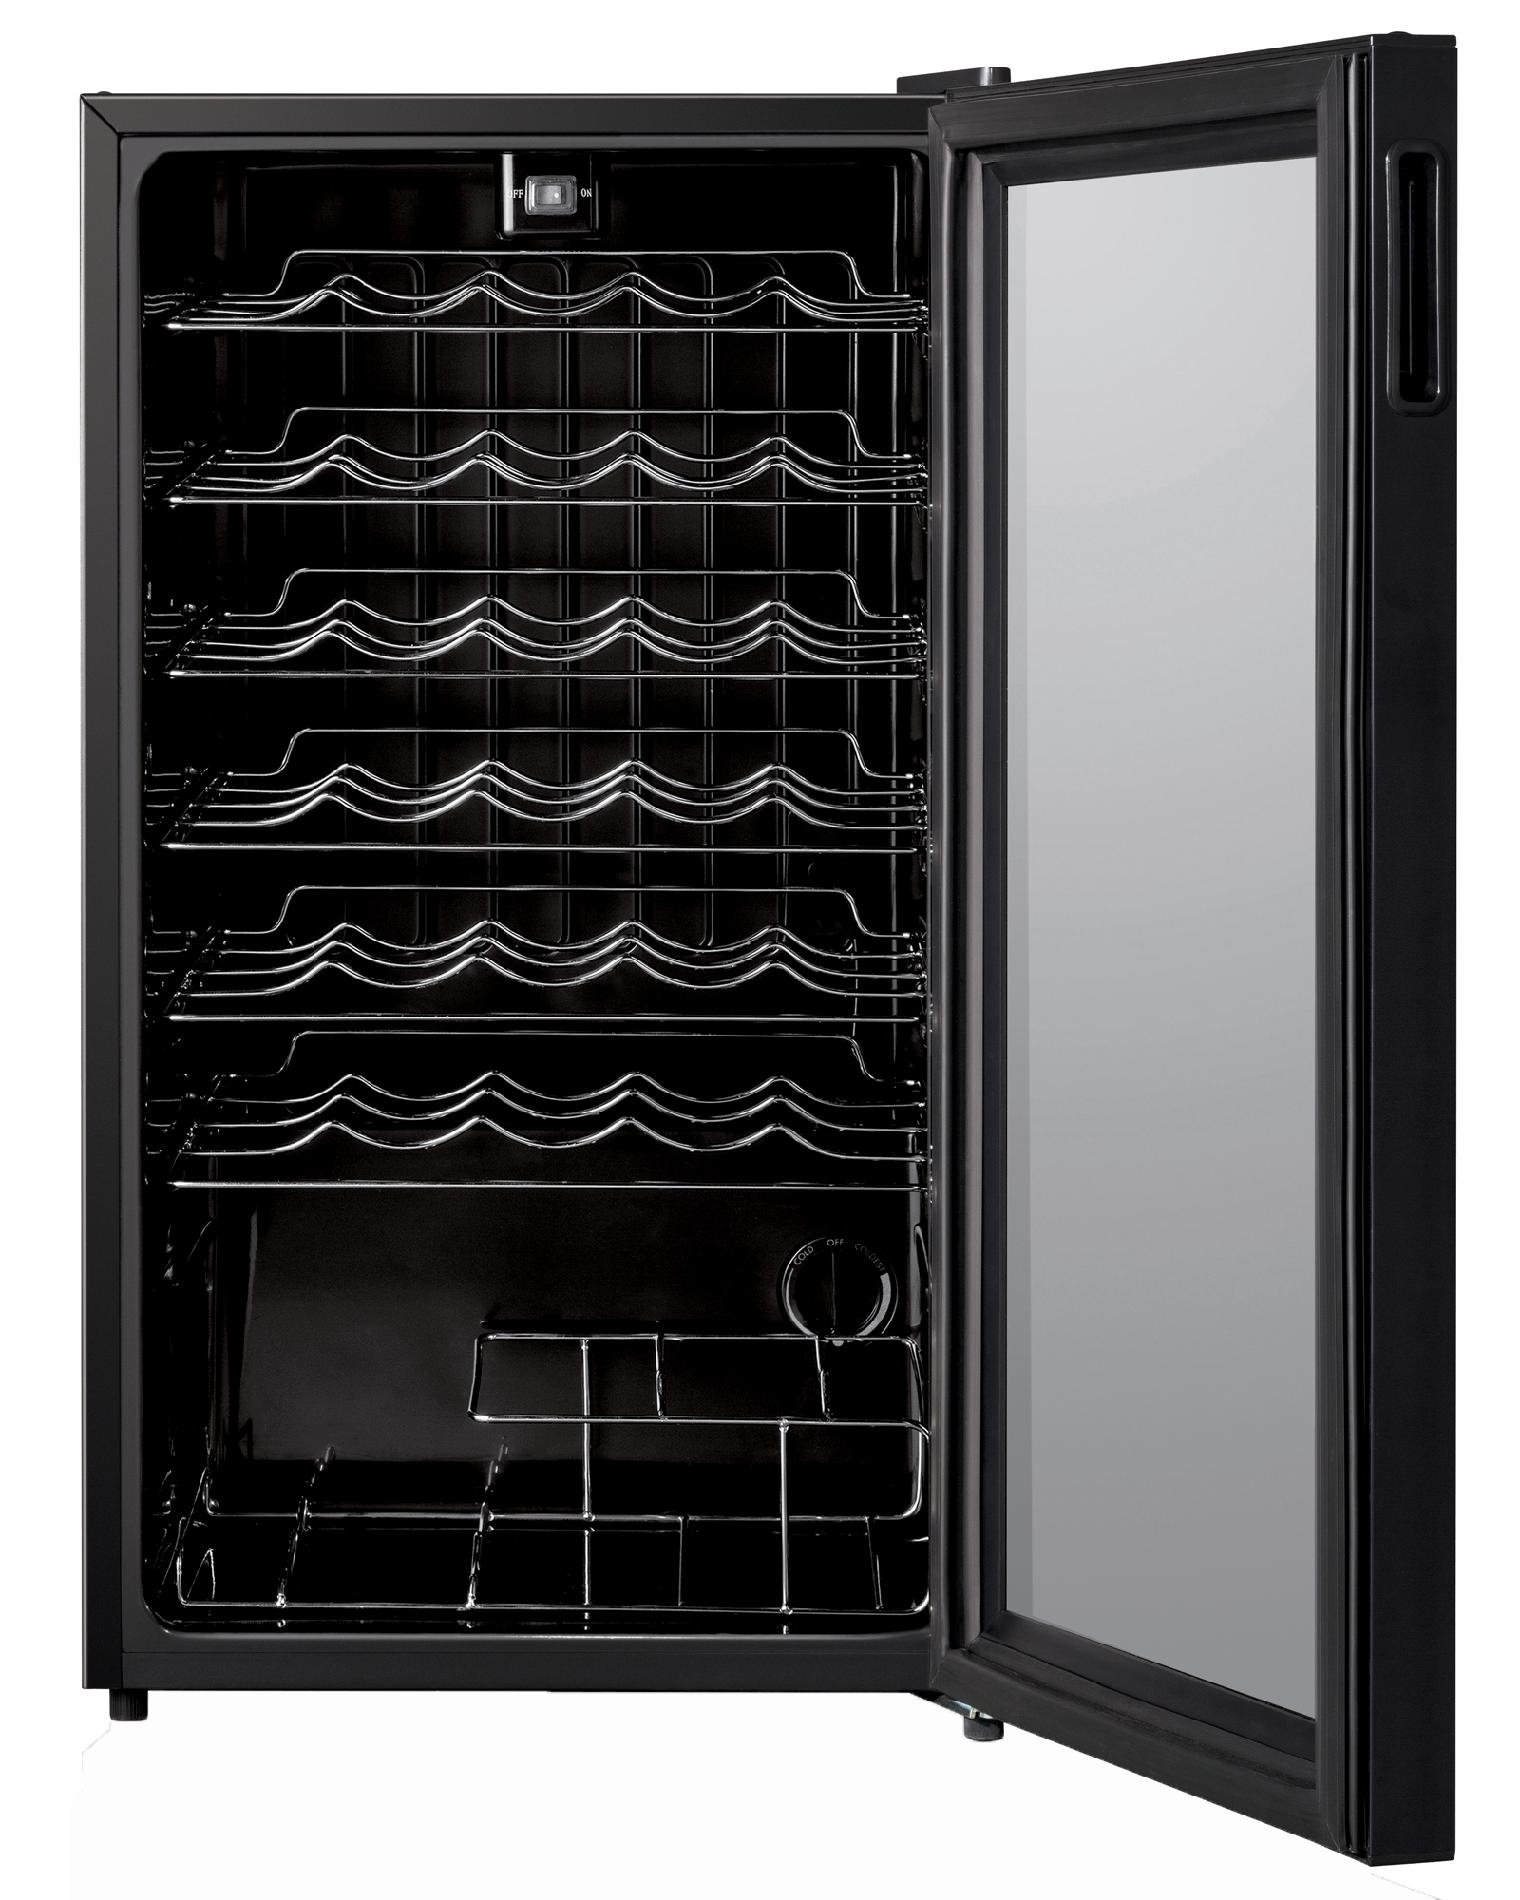 Kenmore 99269 33-Bottle Wine Chiller - Black